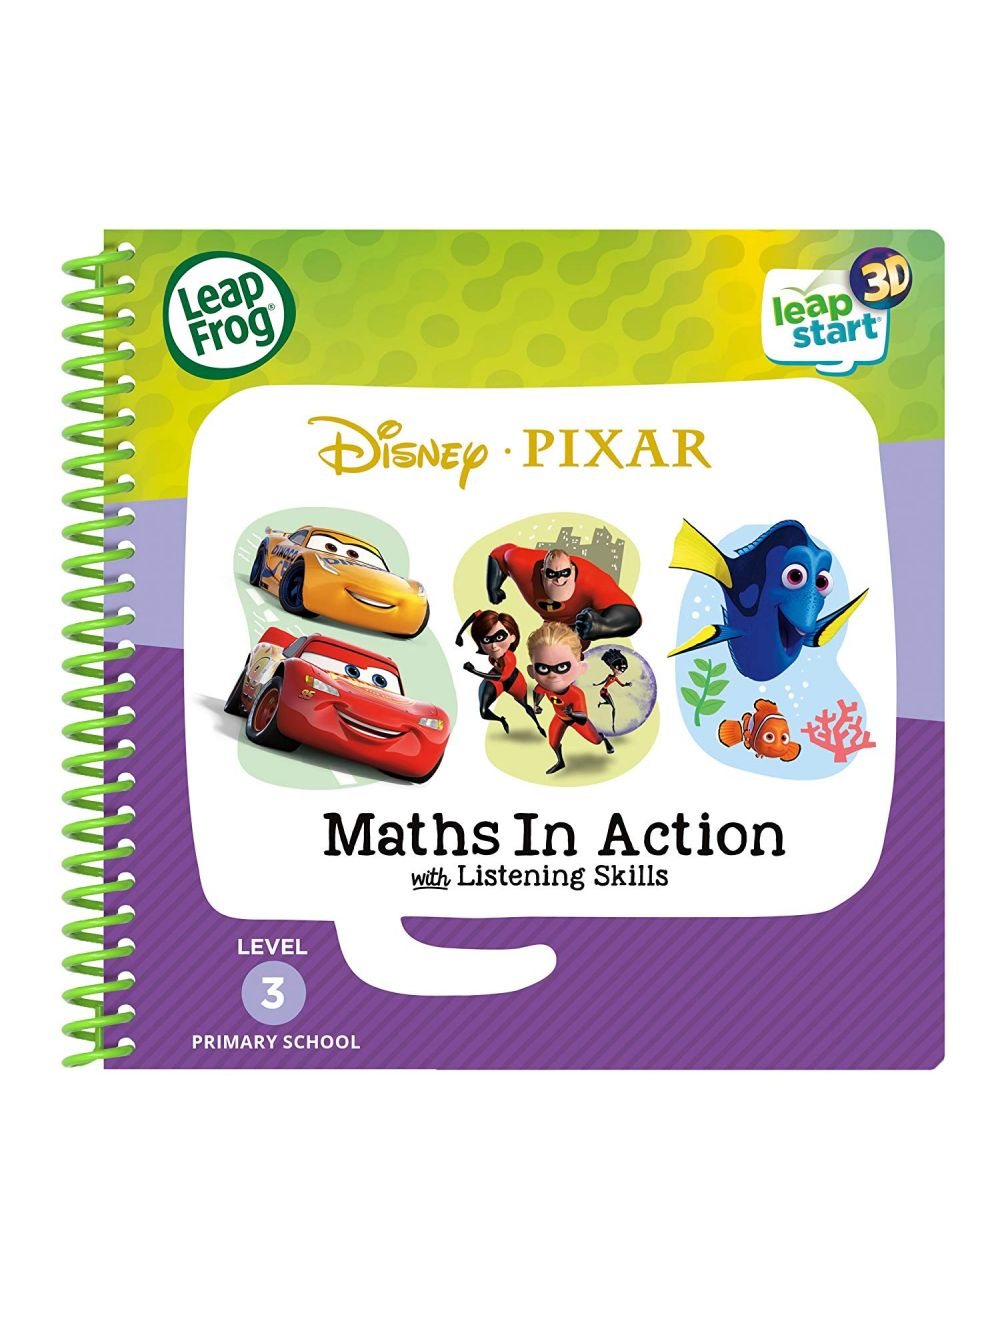 Leapfrog Reception: Disney Pixar Maths in Action Activity Book (3D Enhanced)